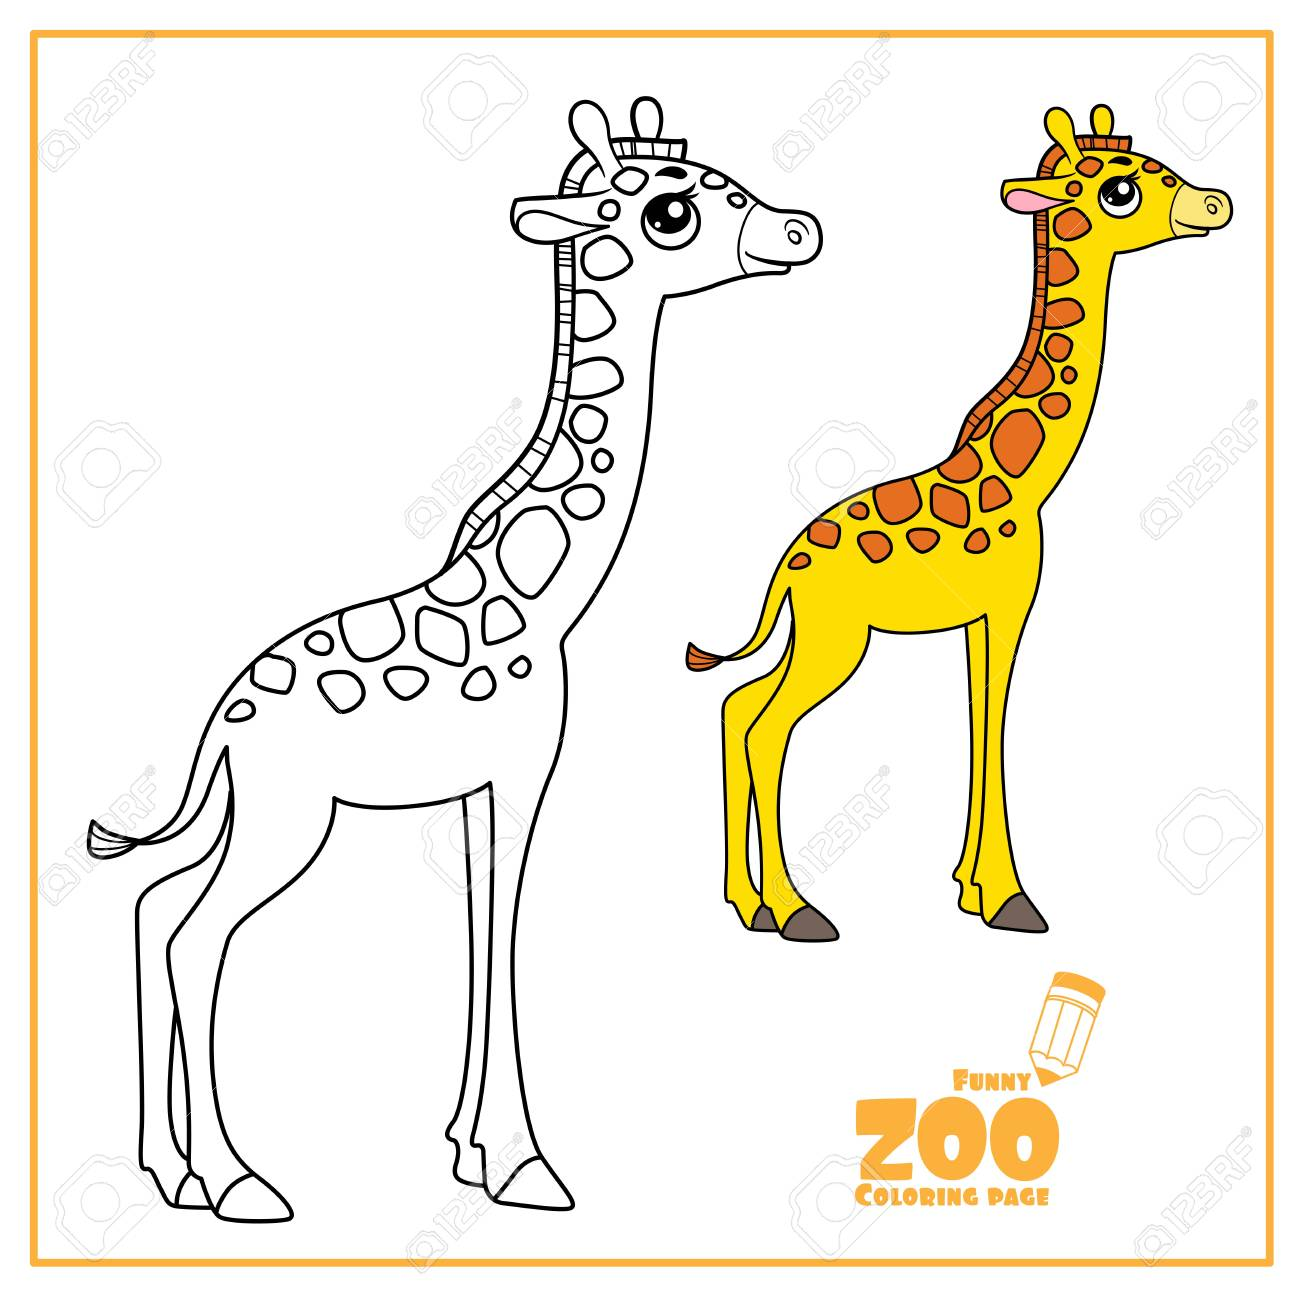 Cute Cartoon Little Giraffe Color And Outlined On A White For Royalty Free Cliparts Vectors And Stock Illustration Image 124972971